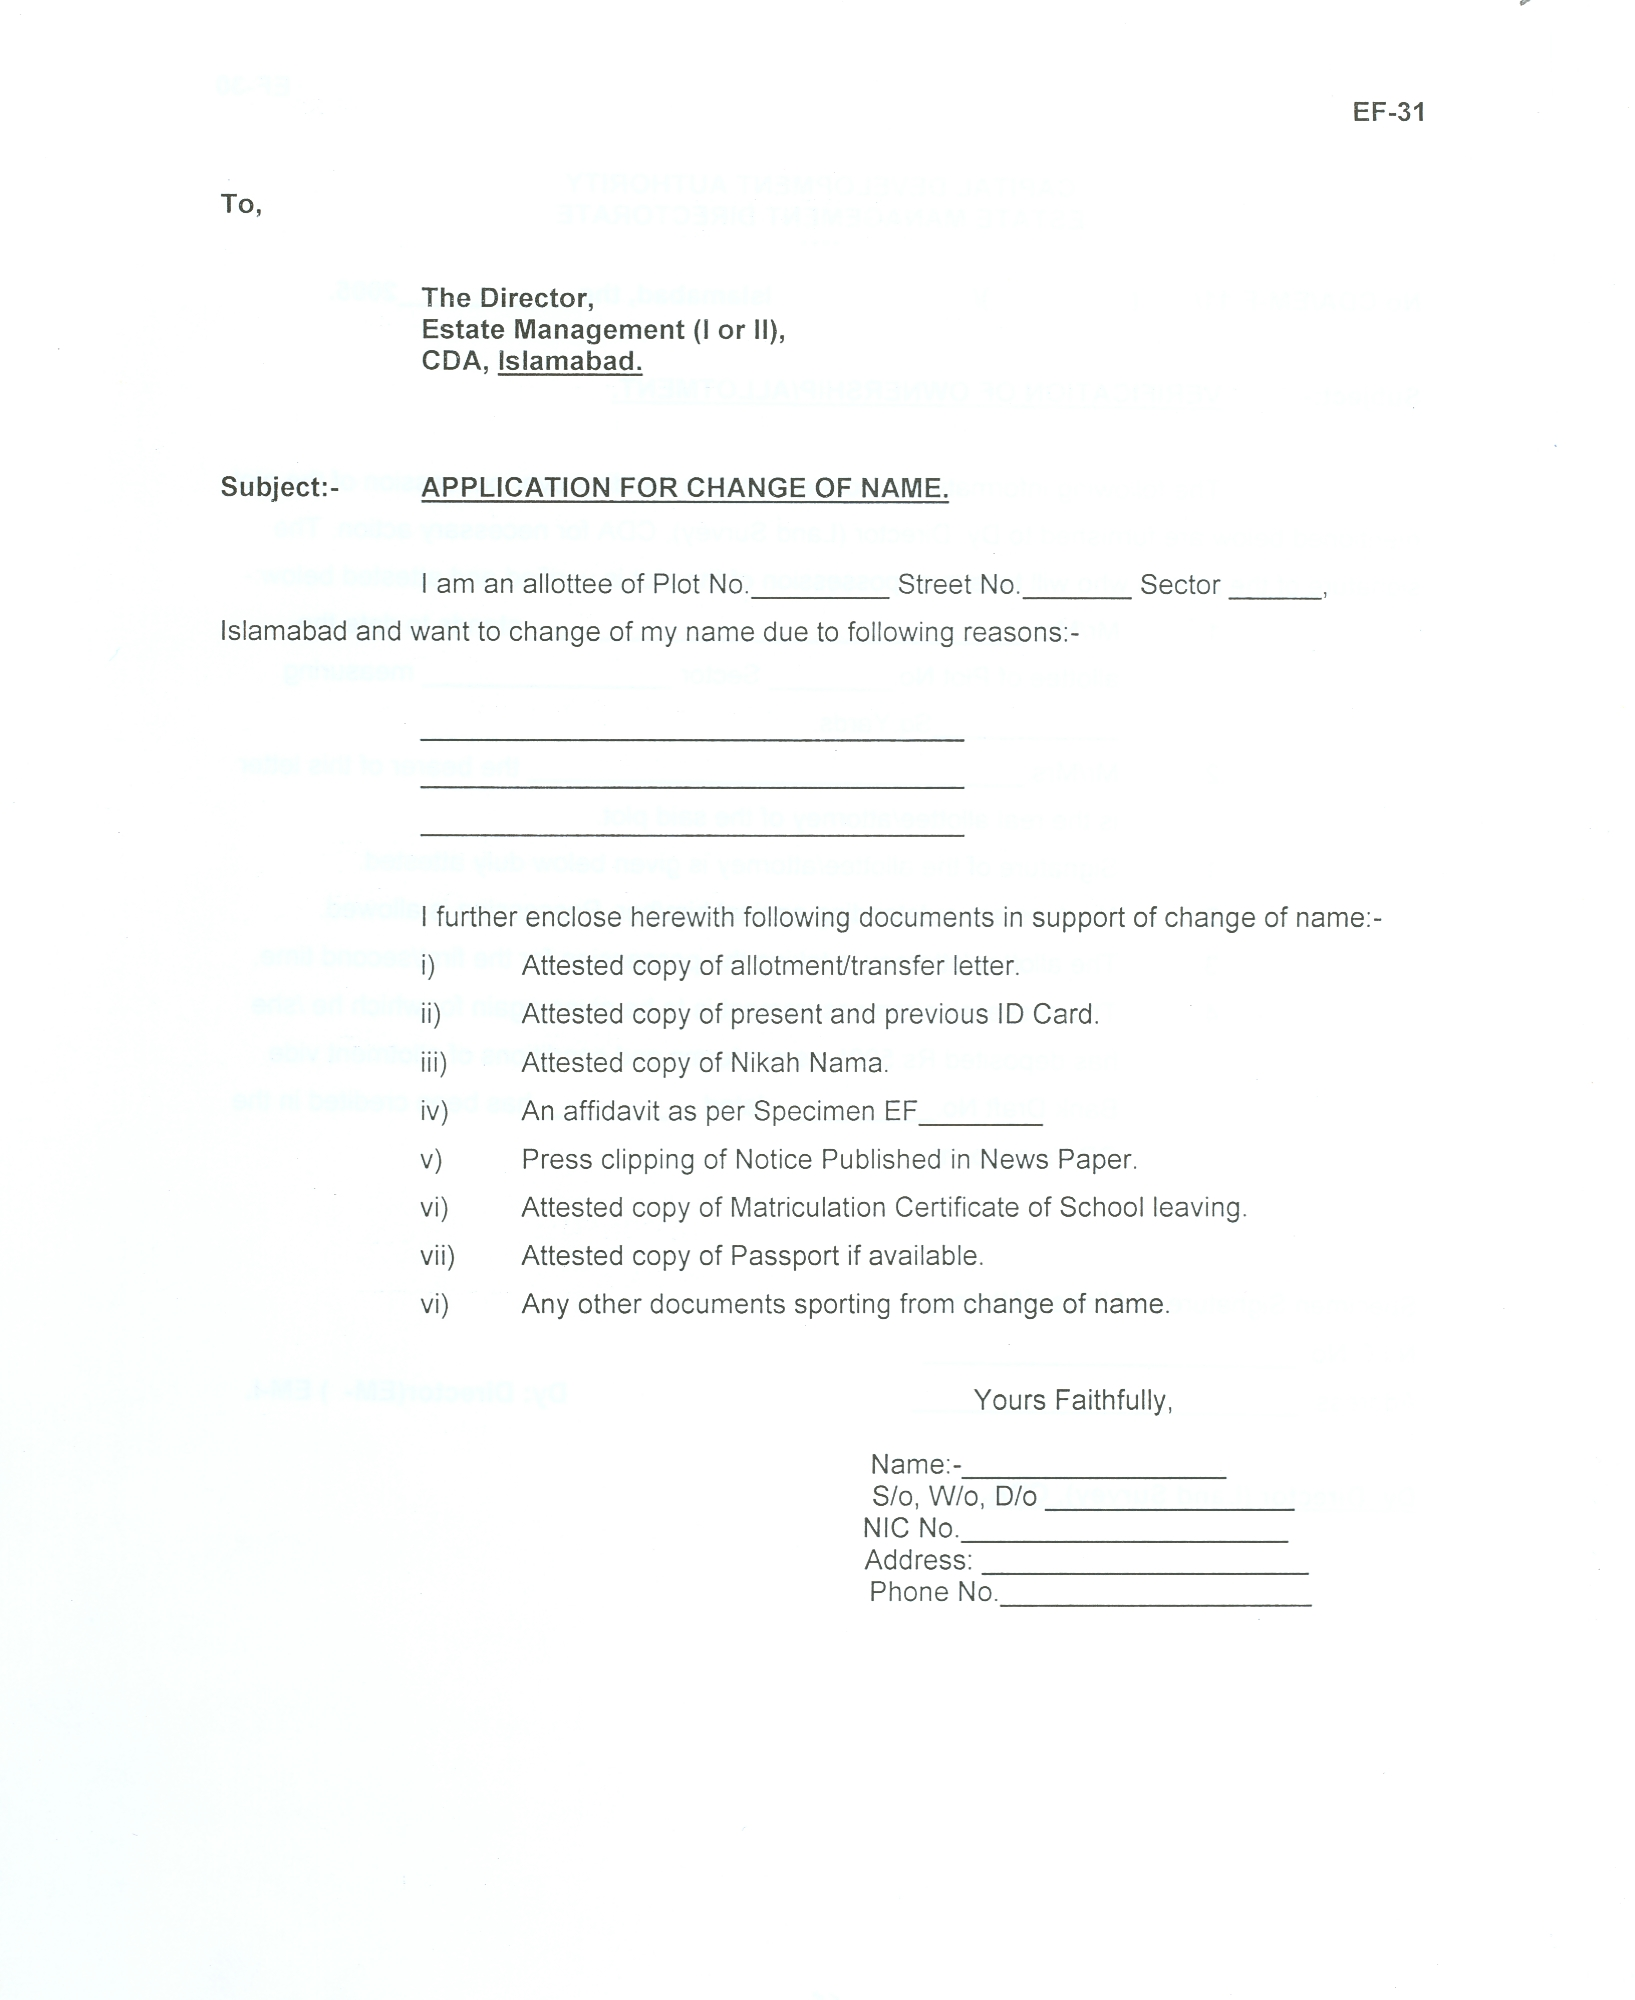 Capital development authority application for change of name spiritdancerdesigns